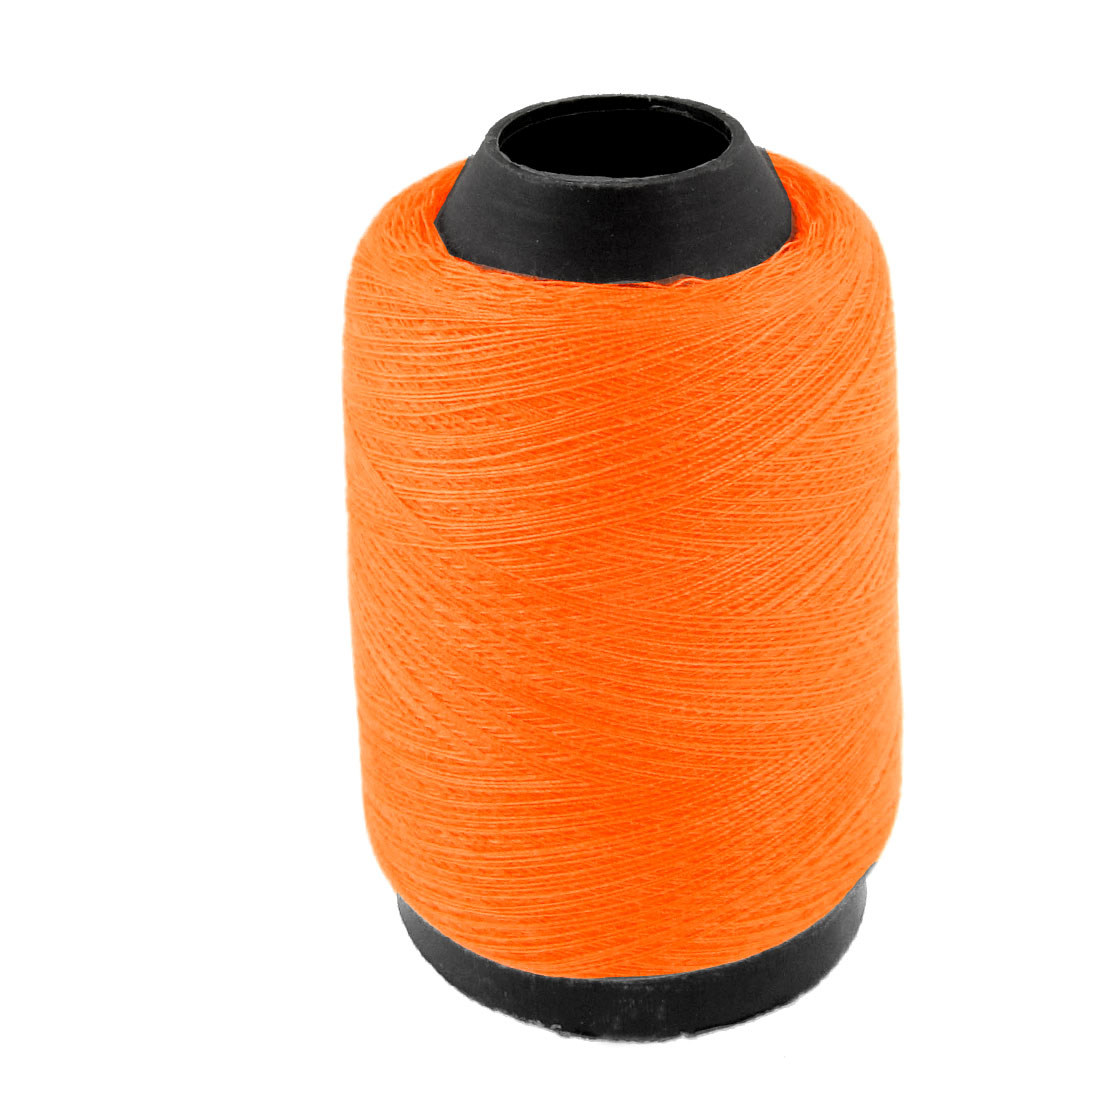 Orange Home Cotton Darning Stitching Sewing Thread Reel